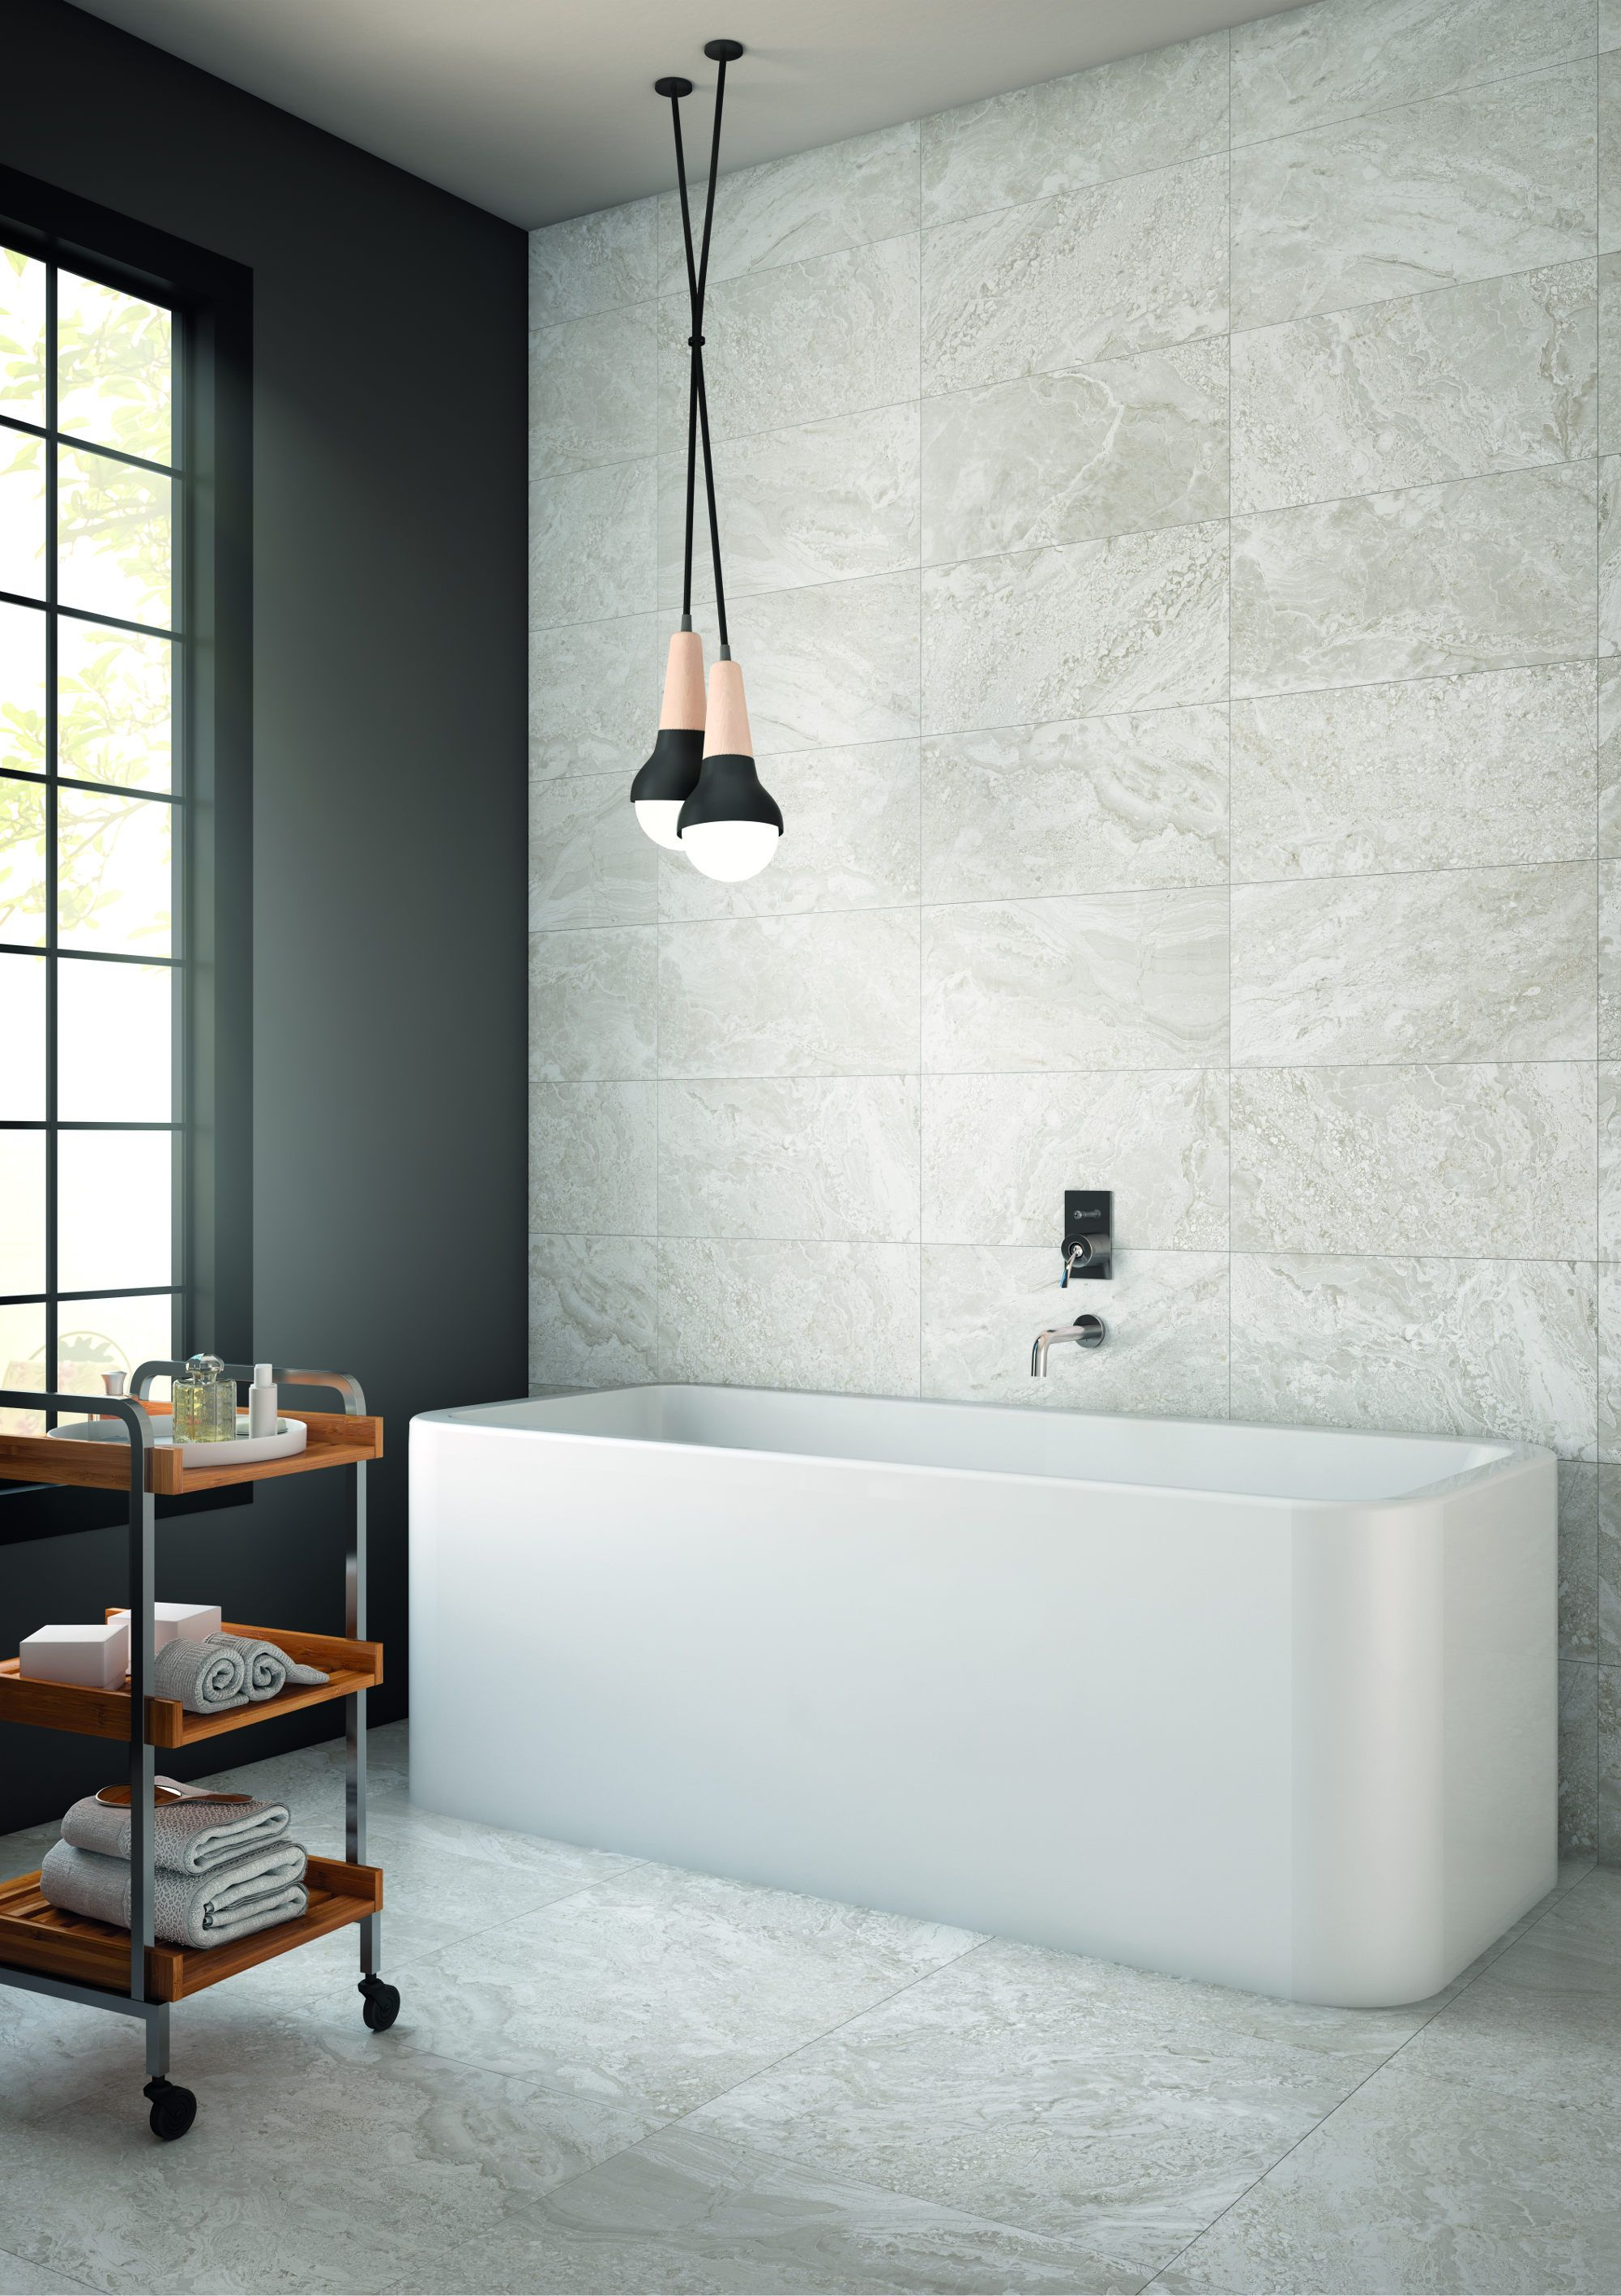 Positano Blanco Glazed Porcelain Floor Ceramic Wall By Roca Http Rocatilegroup Com Products Positano Tile Bathroom Bathroom Decor Porcelain Flooring